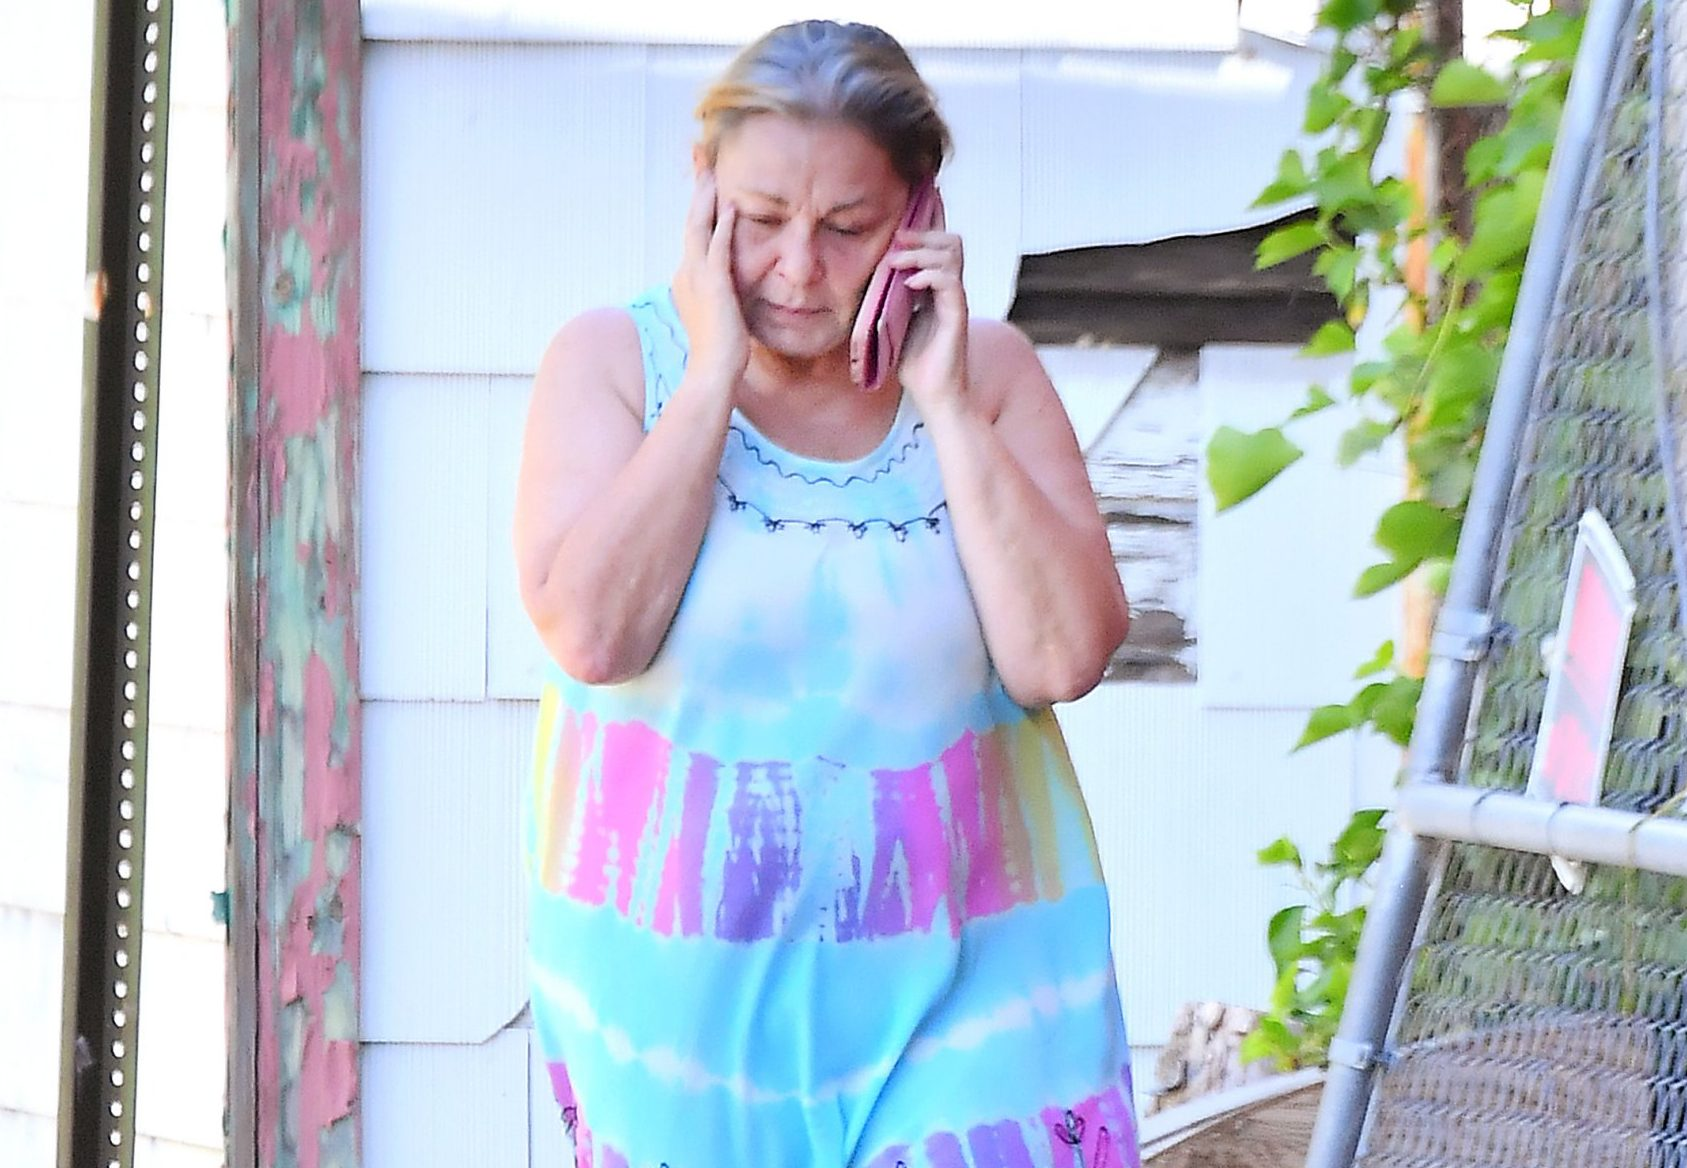 Roseanne Barr spotted looking anguished and crying while talking on the phone in a back alley near her home in Salt Lake City, UT. 07 Jun 2018 Pictured: Roseanne Barr spotted looking anguished and crying while talking on the phone in a back alley near her home in Salt Lake City, UT. Photo credit: Marksman / MEGA TheMegaAgency.com +1 888 505 6342